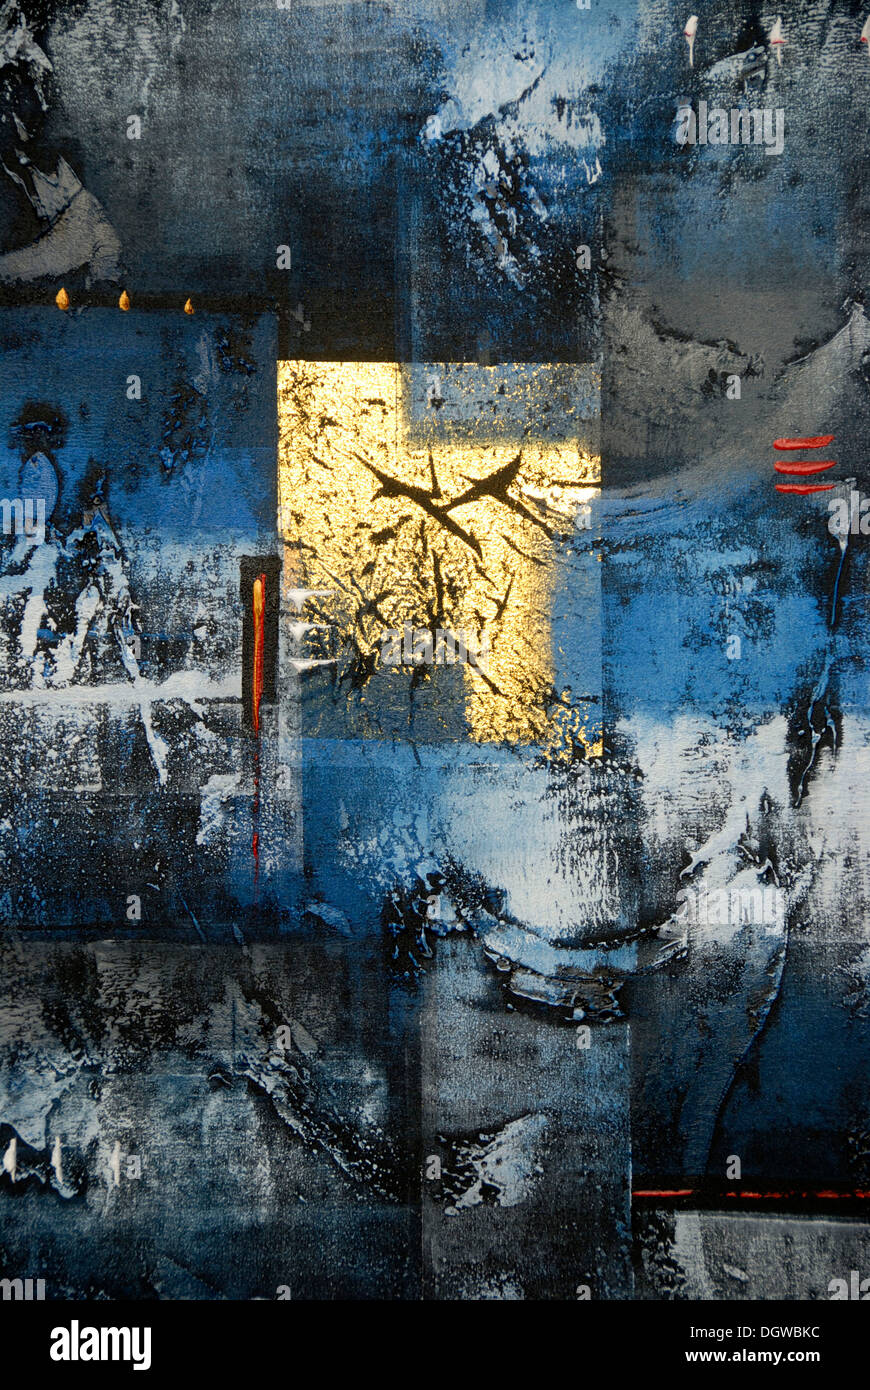 Abstract Art Painting In The Colours Gold Blue Black And